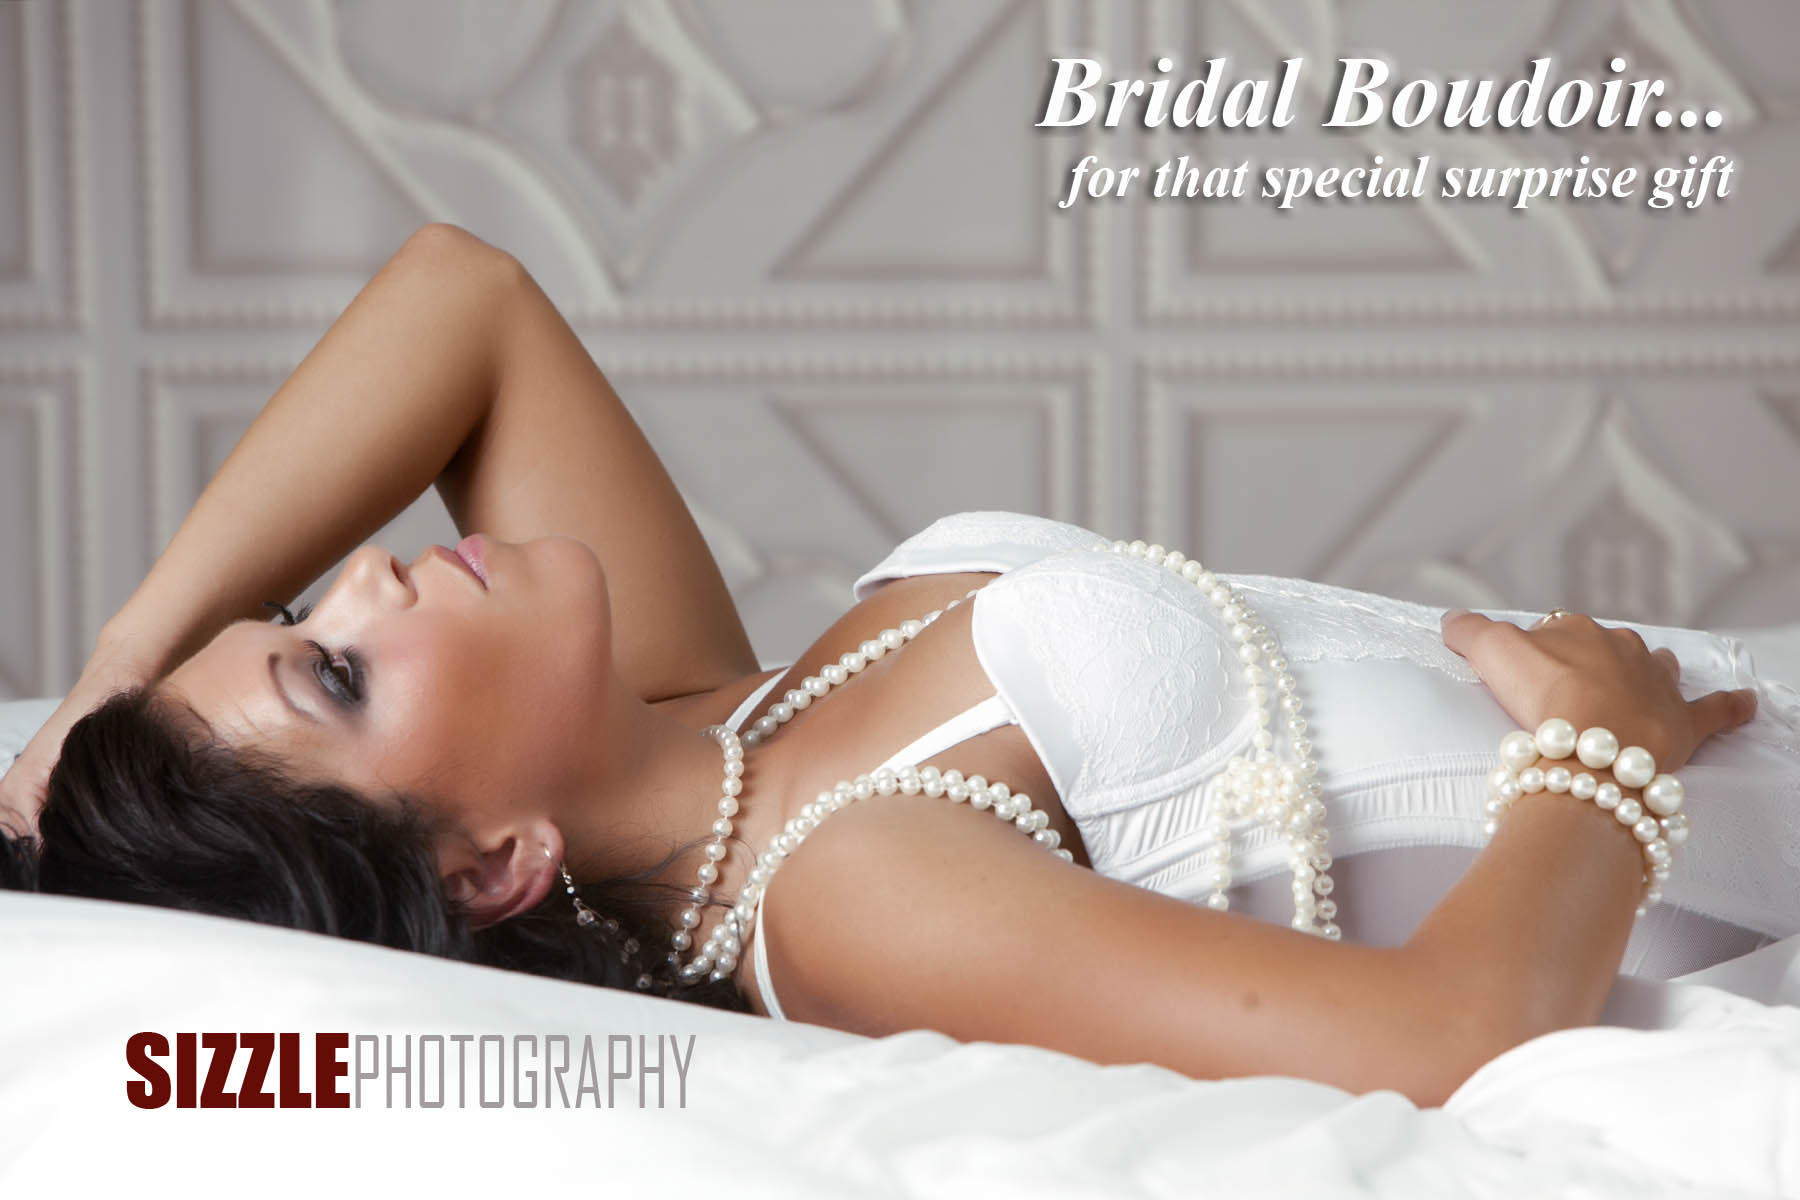 bridal-boudoir-sudbury-photography